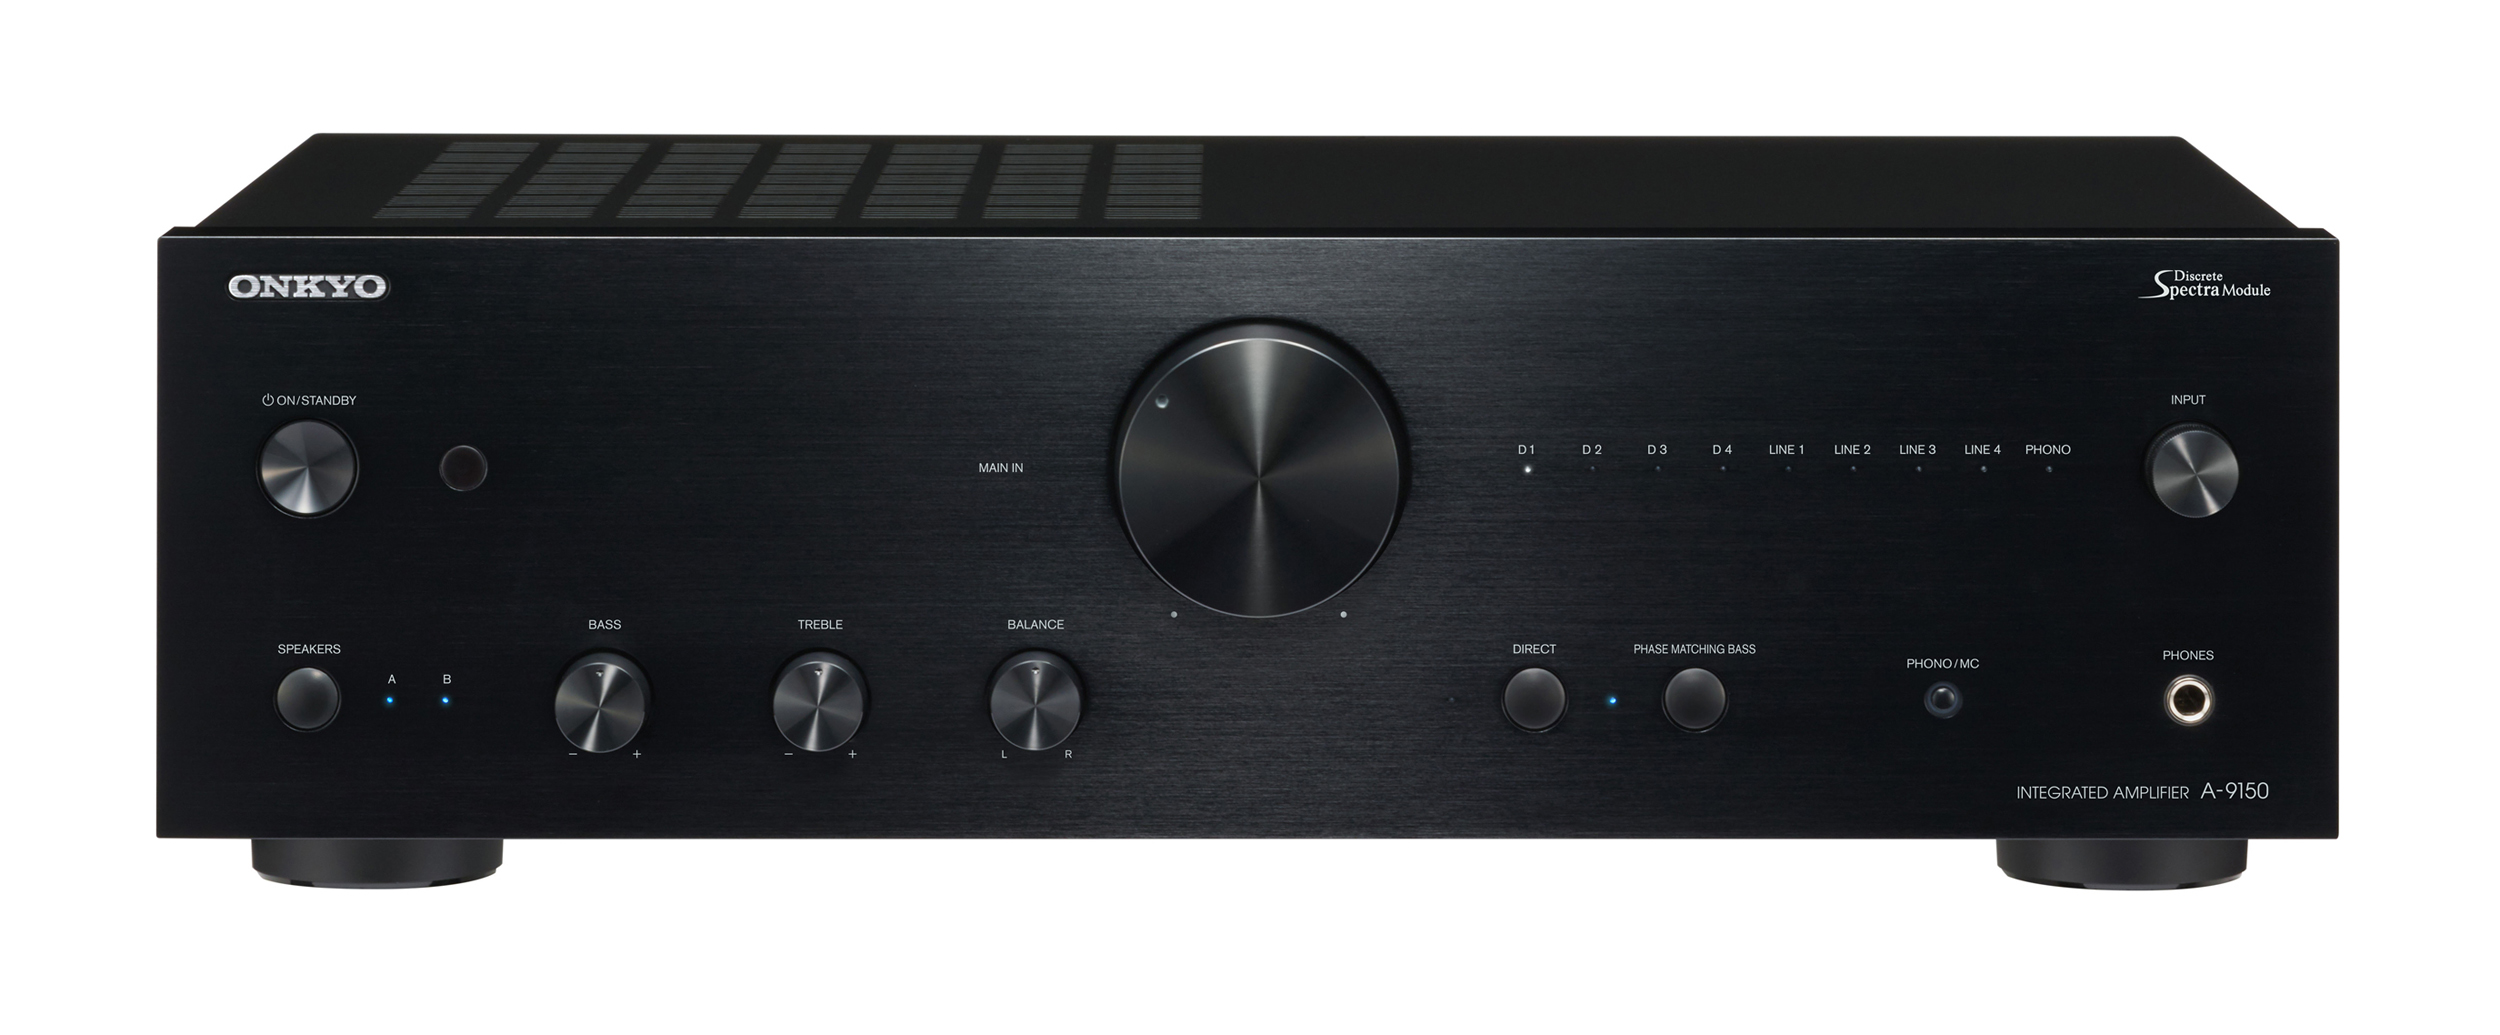 A-9150-B, HIFI AMPLIFIER EQUAL, black